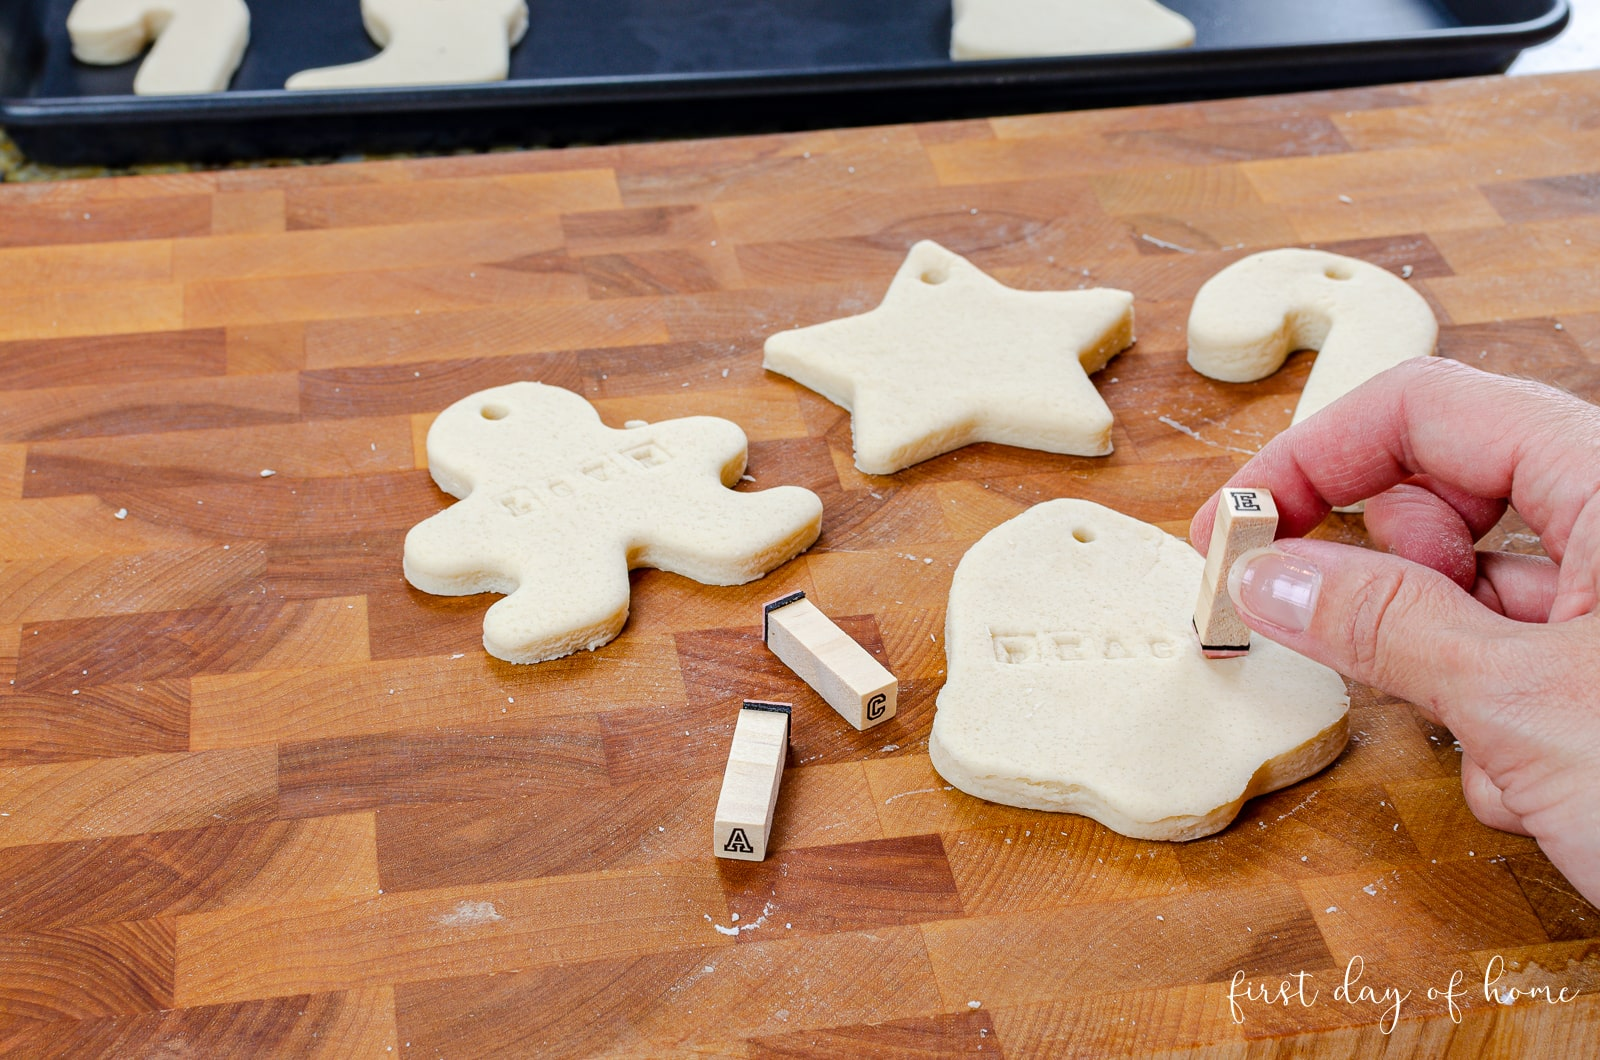 Inserting holes and stamping salt dough ornaments